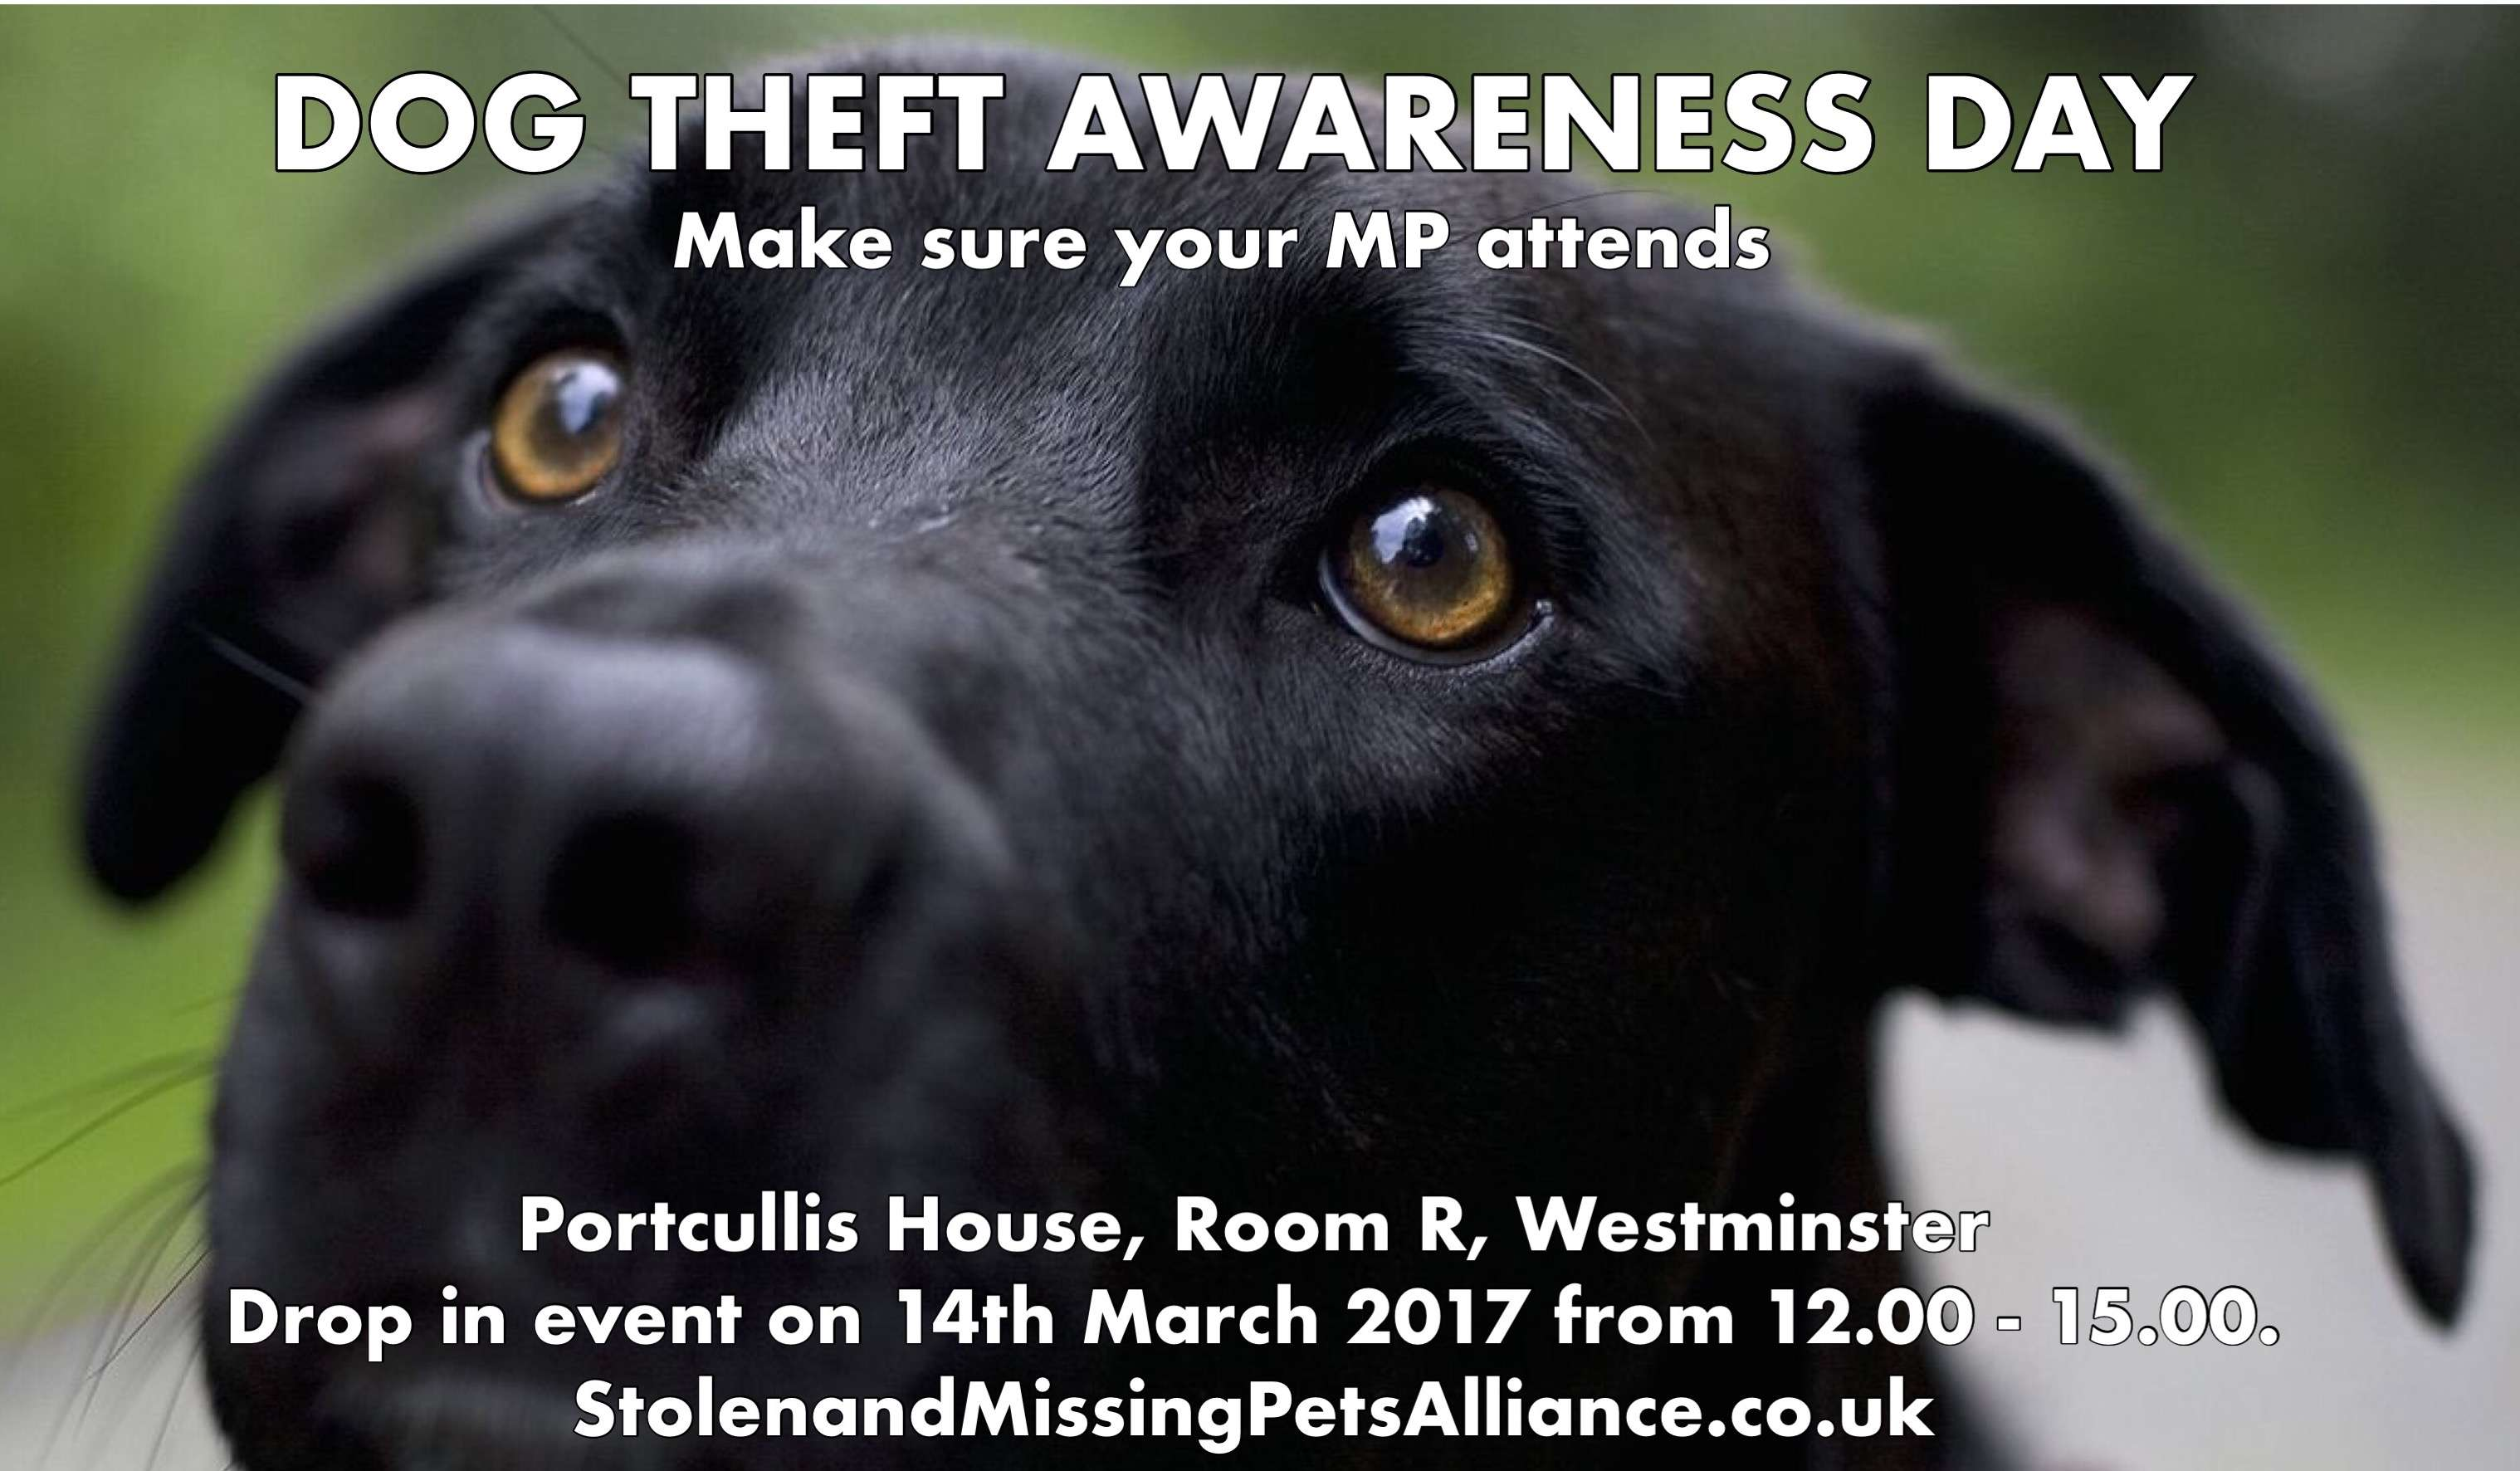 SAMPA LAUNCHES DOG THEFT AWARENESS DAY